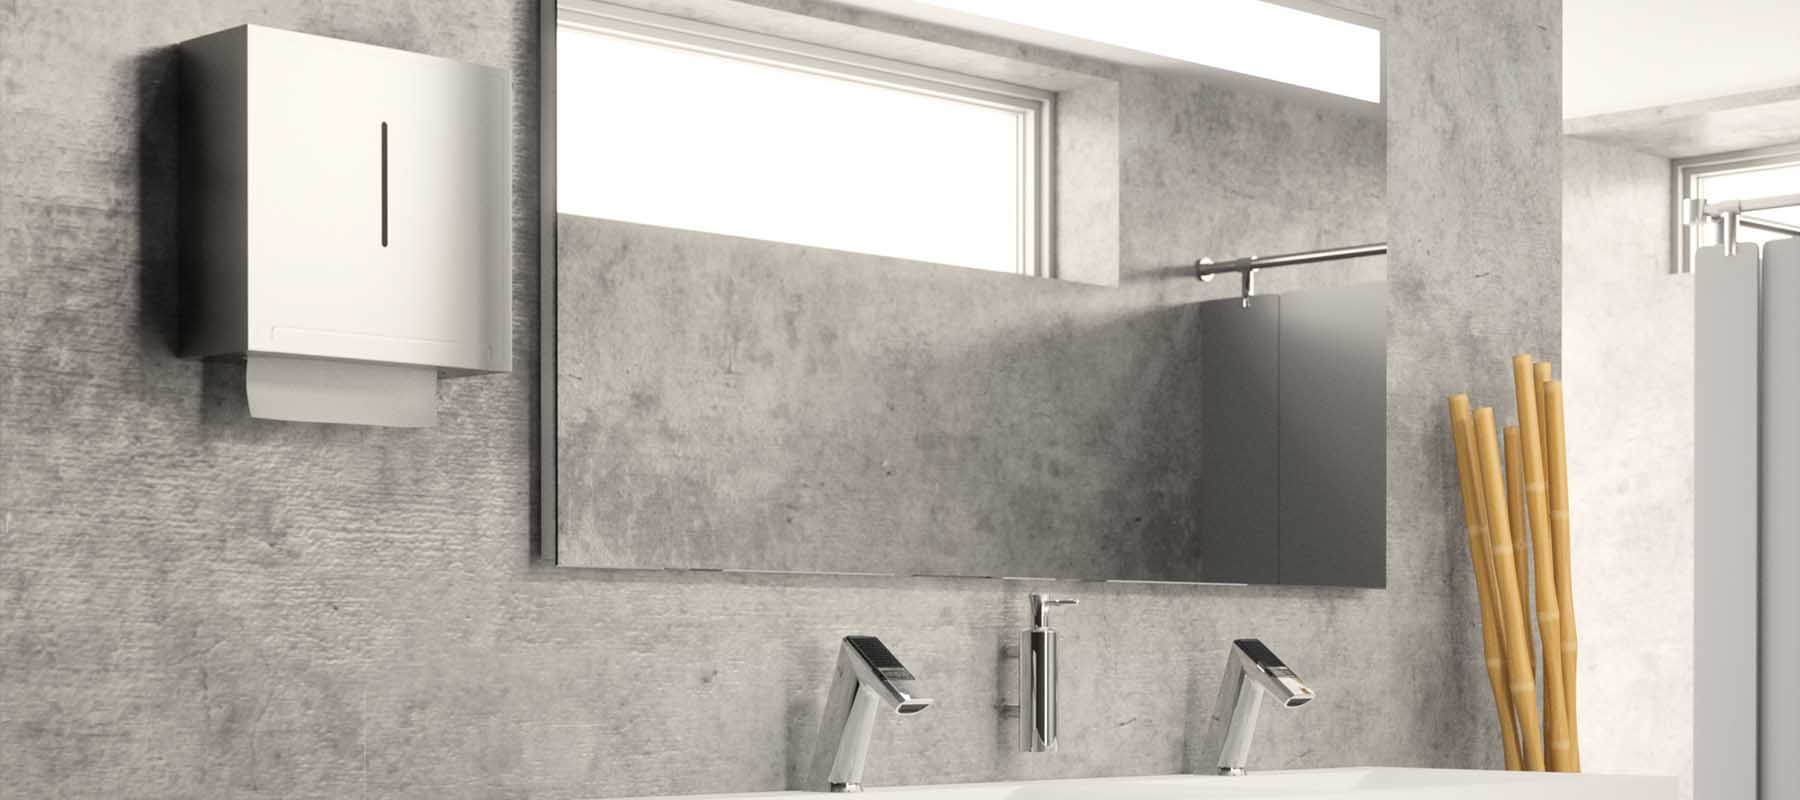 Paper Towel Dispensers | Cloakroom Solutions